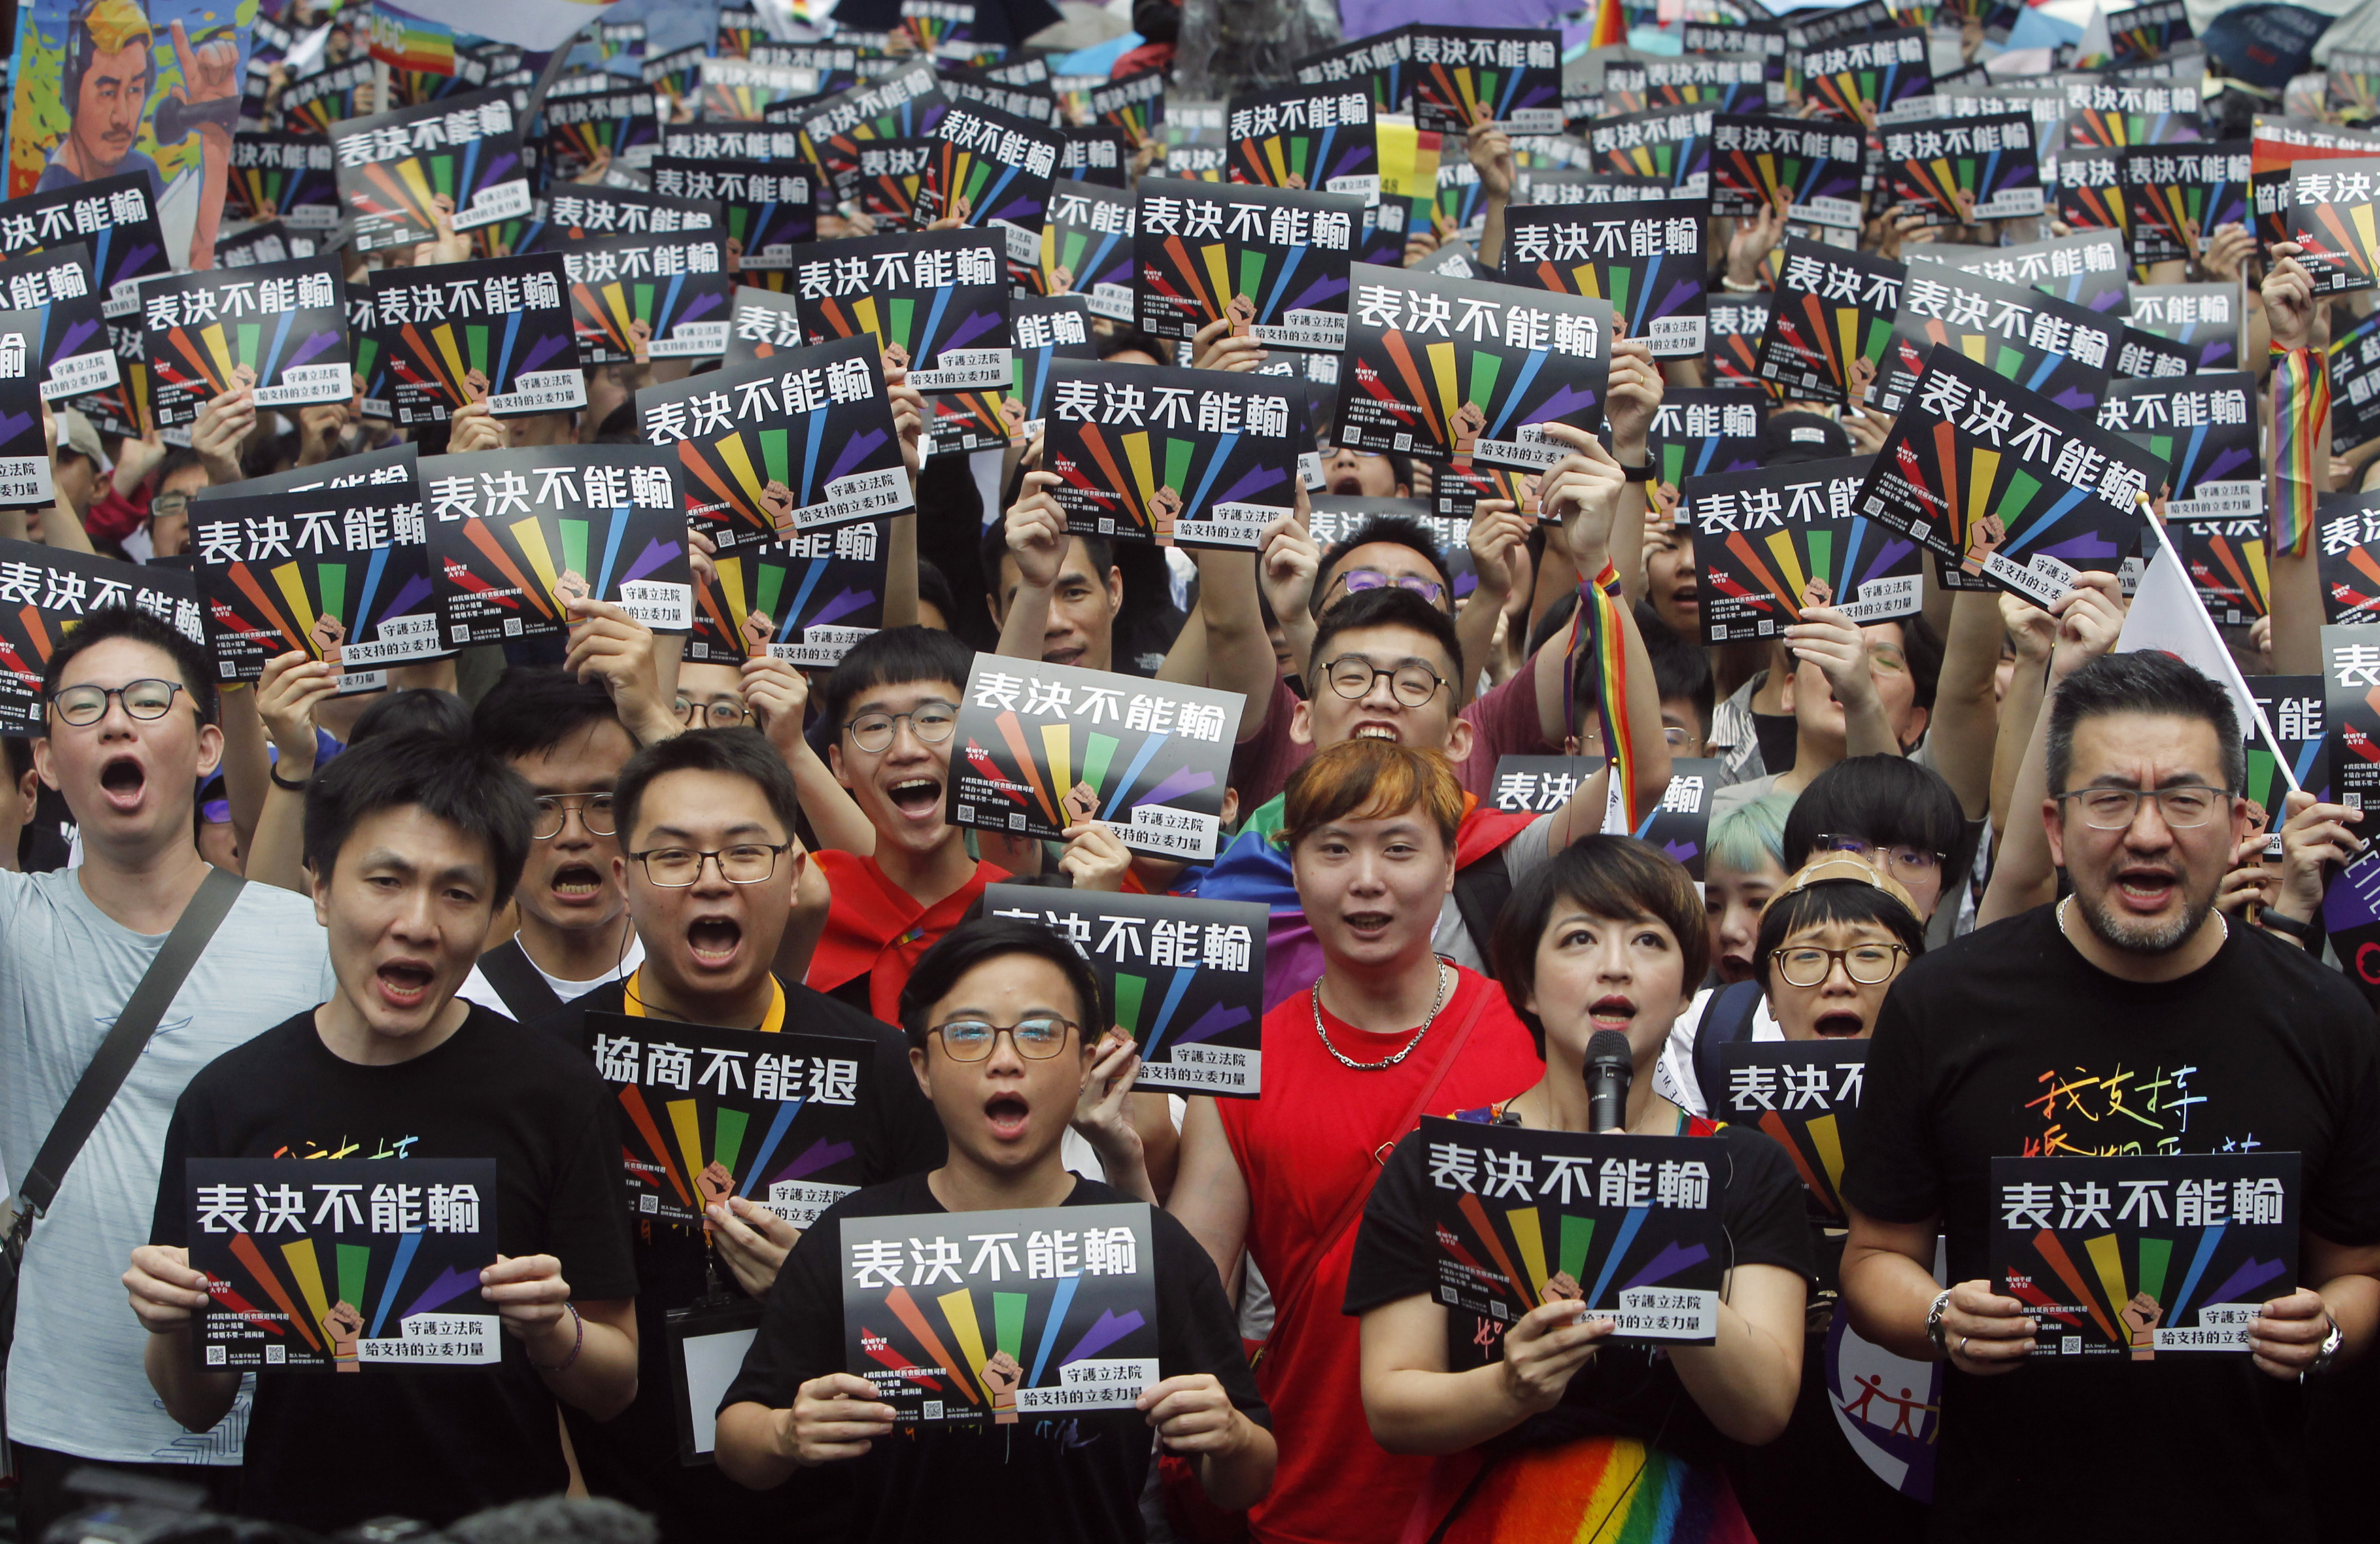 Taiwan legalises same-sex marriage